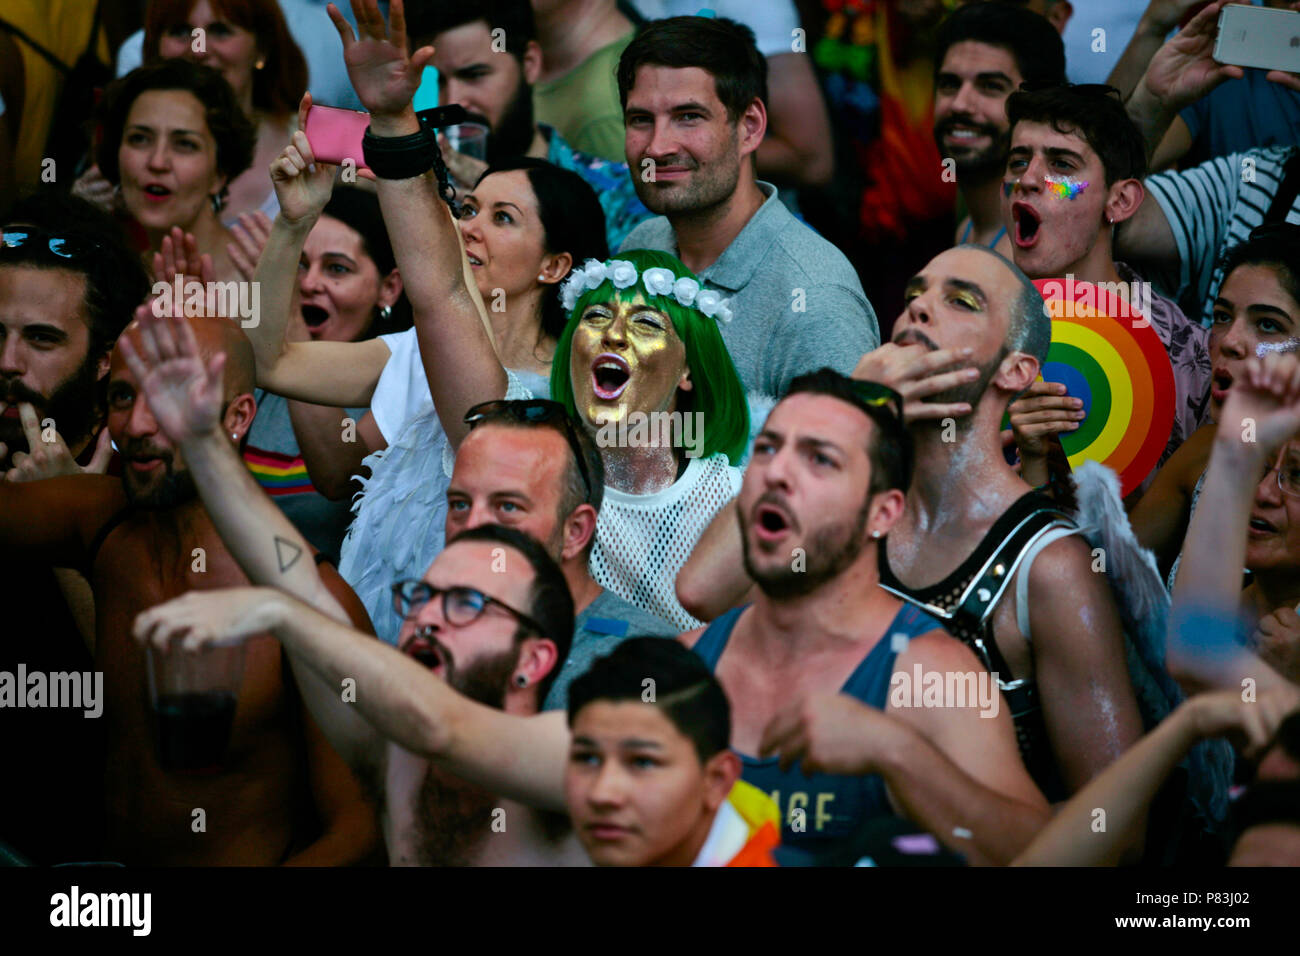 People seen enjoying the music during the 2018 Pride Parade. Thousands of people has been filling the streets and avenues of Madrid on a sunny day for the 2018 gay pride parade after still struggling for gay rights around the world. - Stock Image